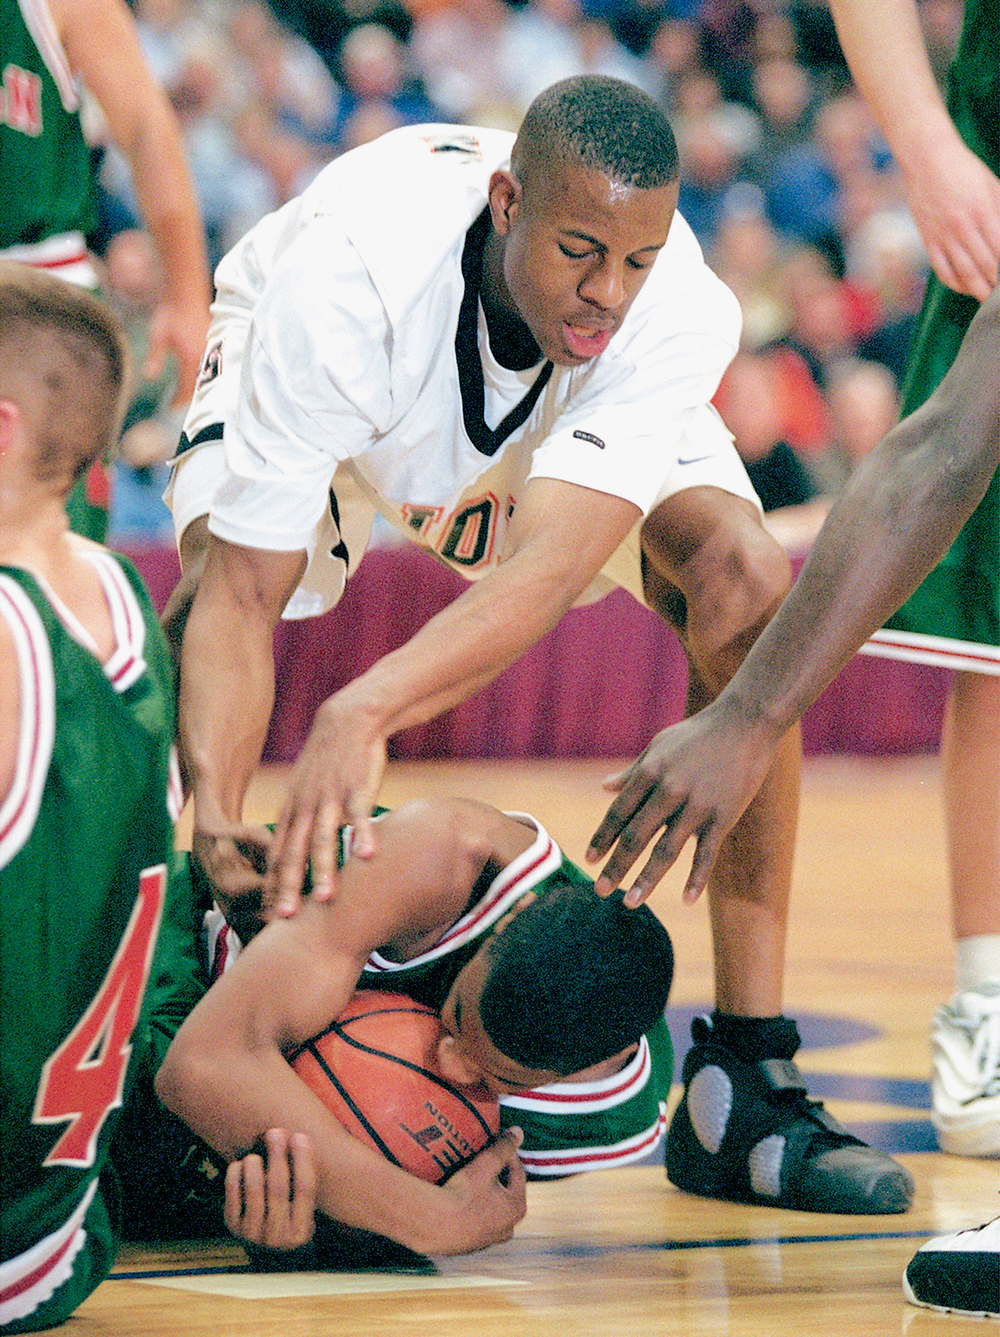 Lincoln's Chris Bunch tries to protect a loose ball from the prying hands of Lanphier's Andre Iguodala during a Sectional game at the Prairie Capital Convention Center March 5, 2002. File/The State Journal-Register